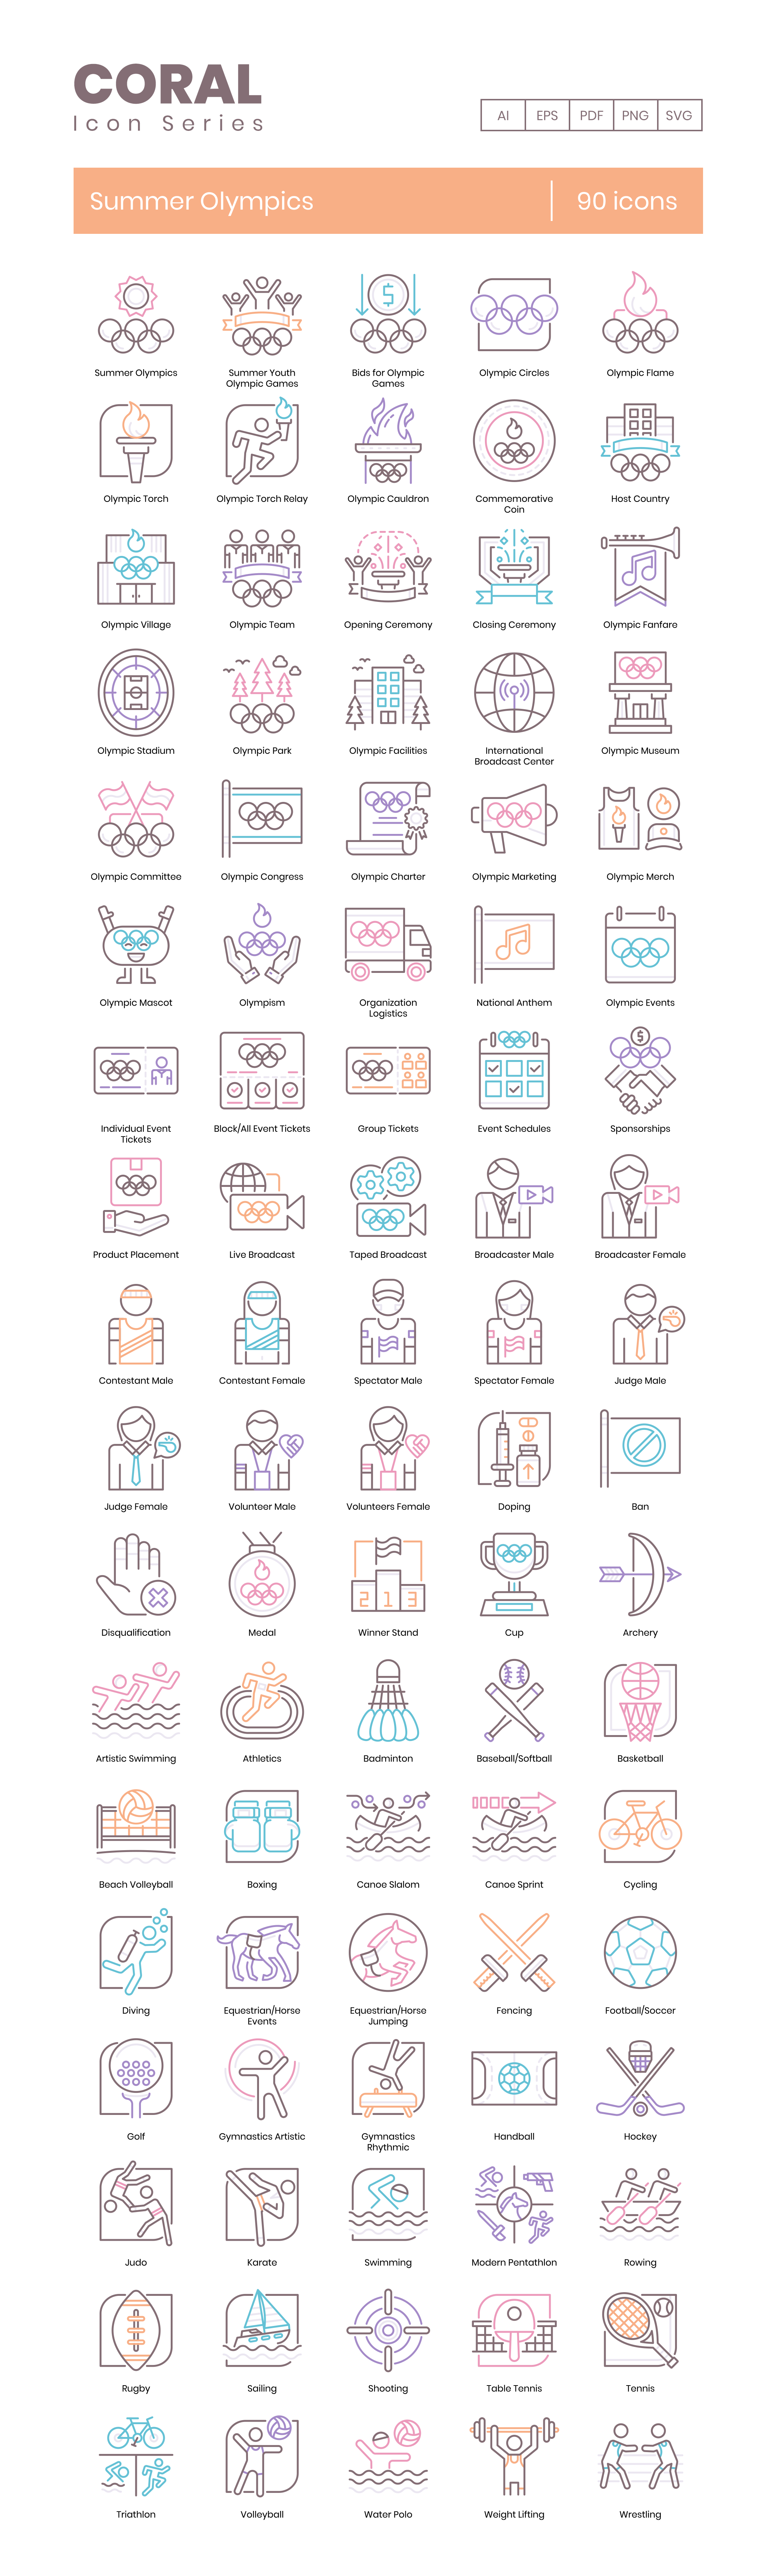 Summer Olympics Vector Icons Preview Image